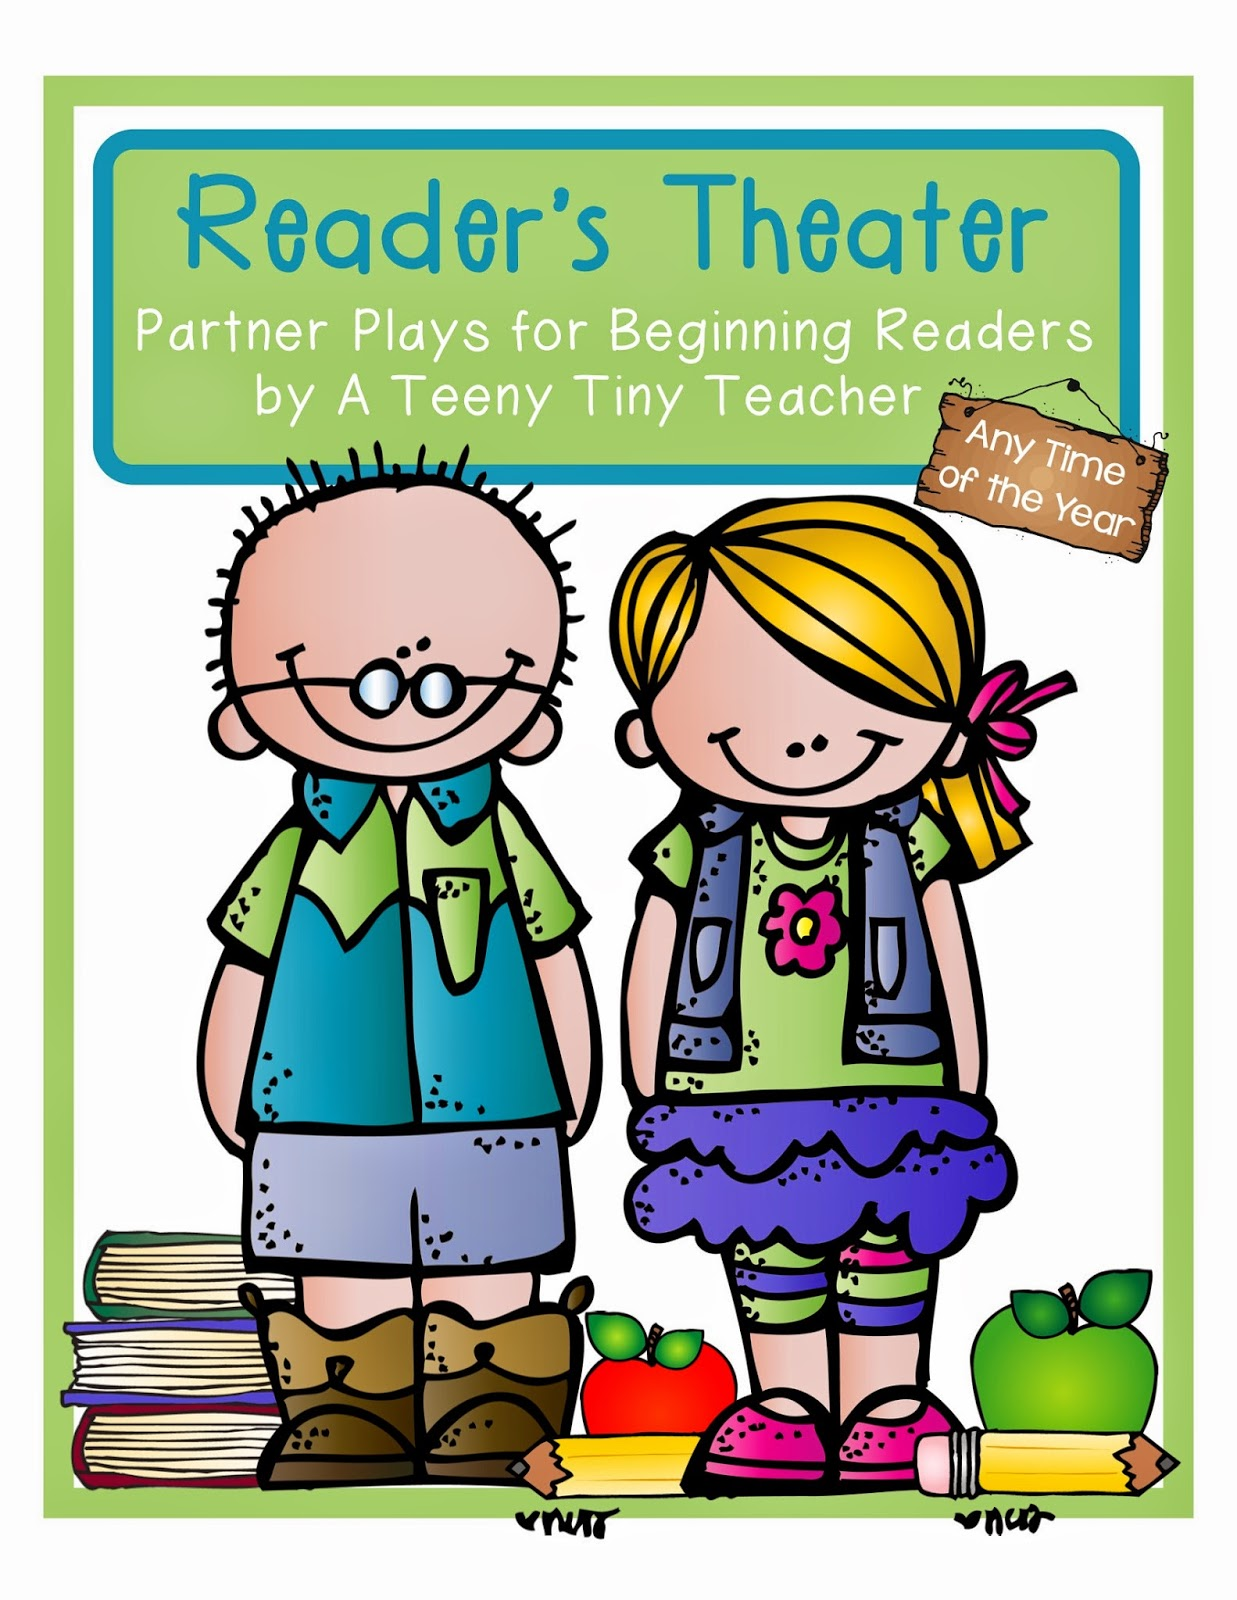 Theatre clipart readers theater Theater Teeny Teacher Reader's A